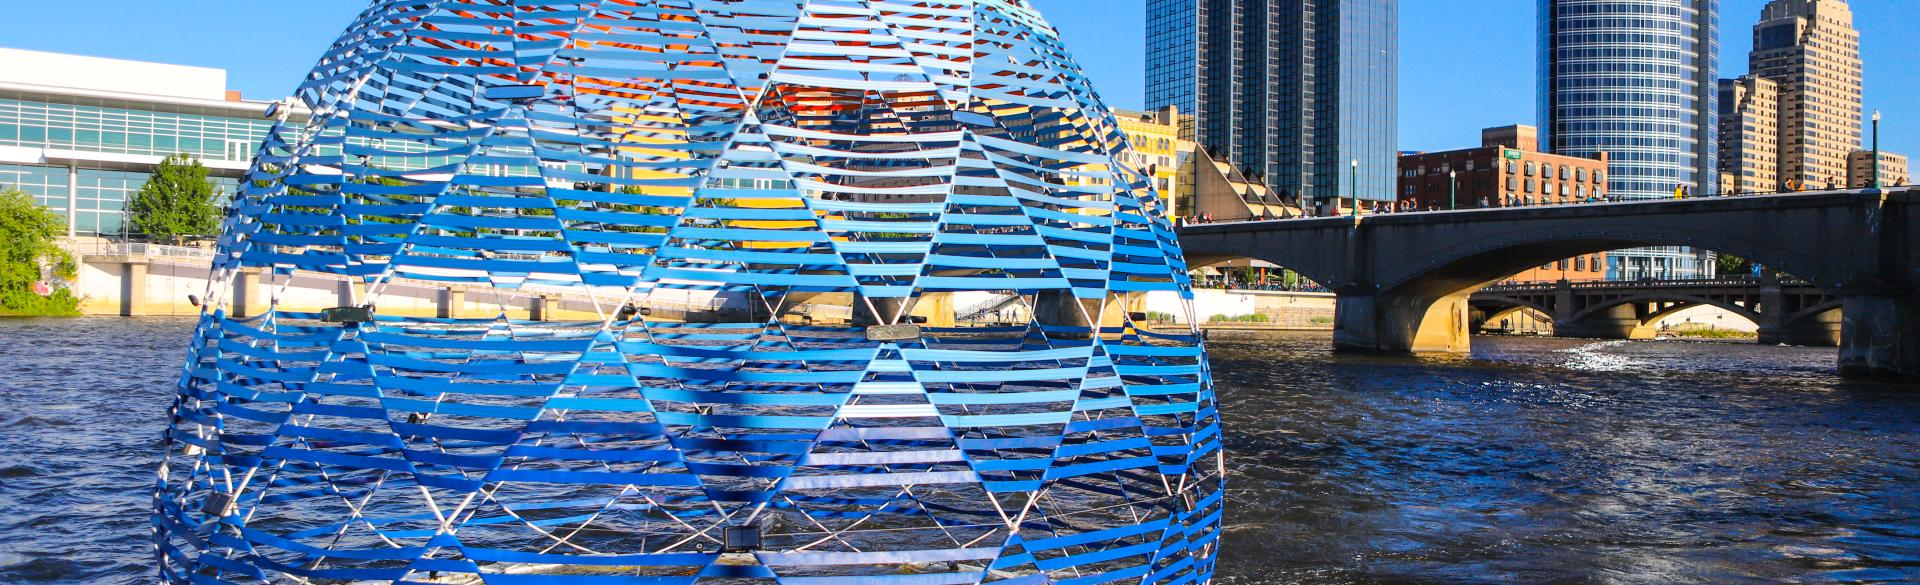 Harvest Dome 3.0 created by SLO Architecture for ArtPrize 2018